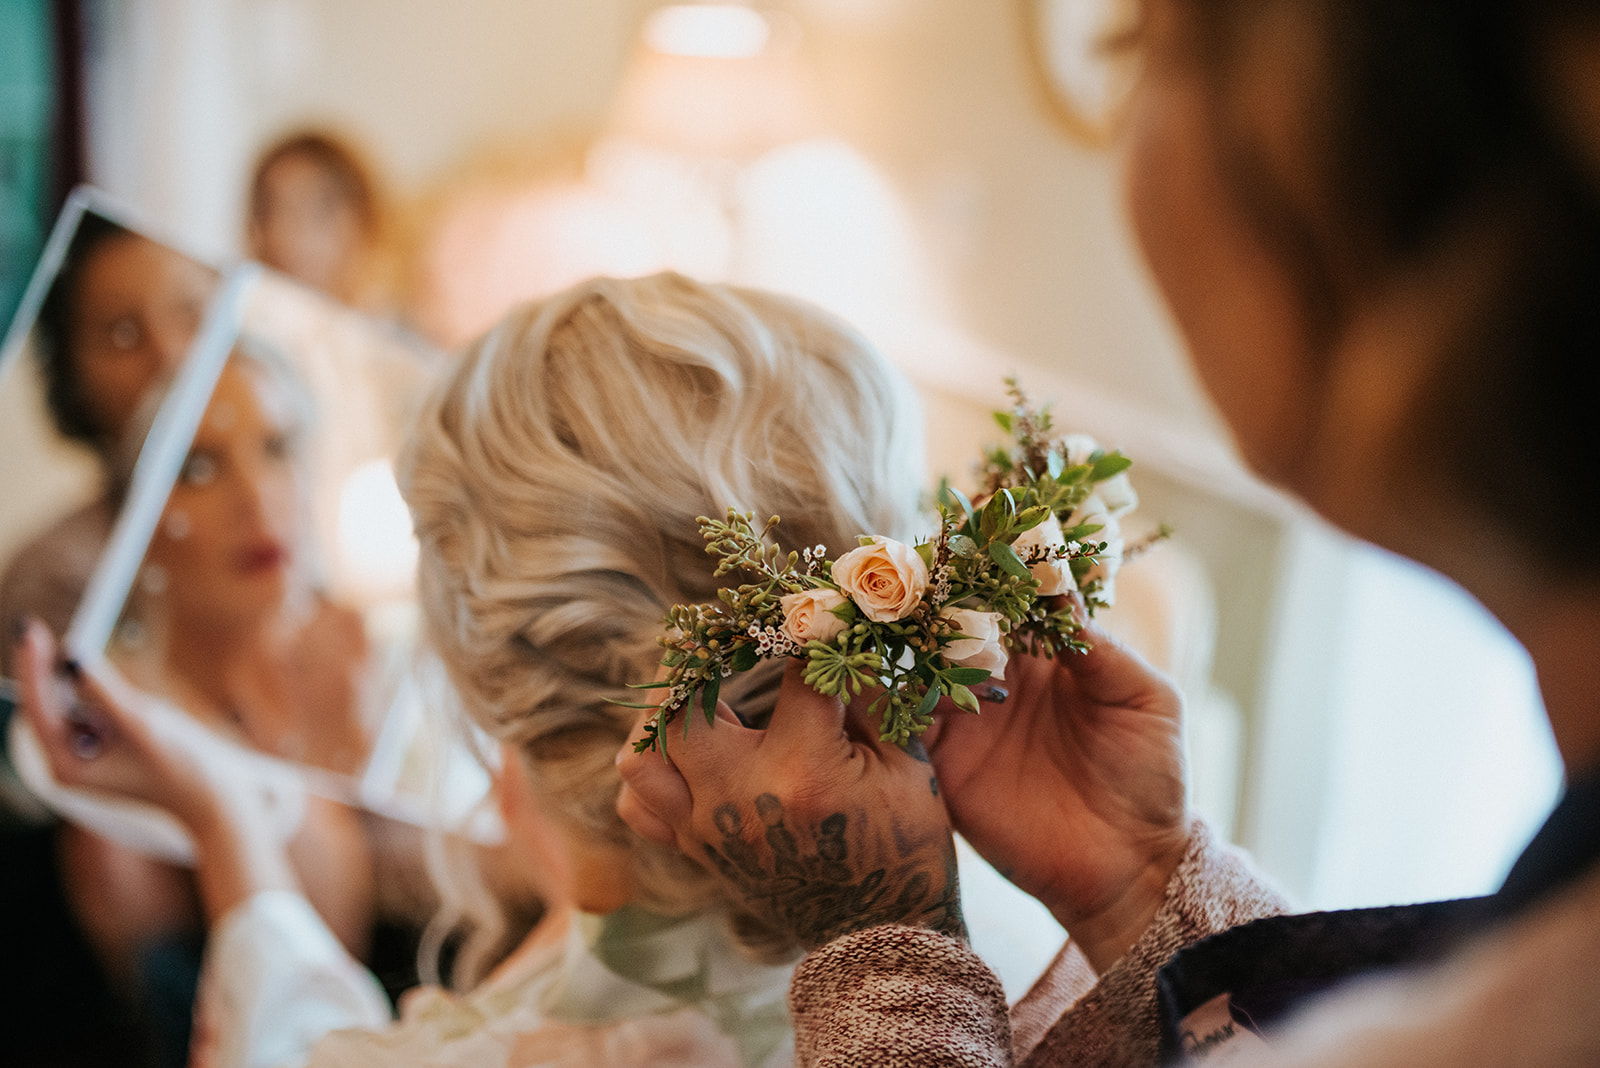 overthevineswisconsinwedding_0222.jpg